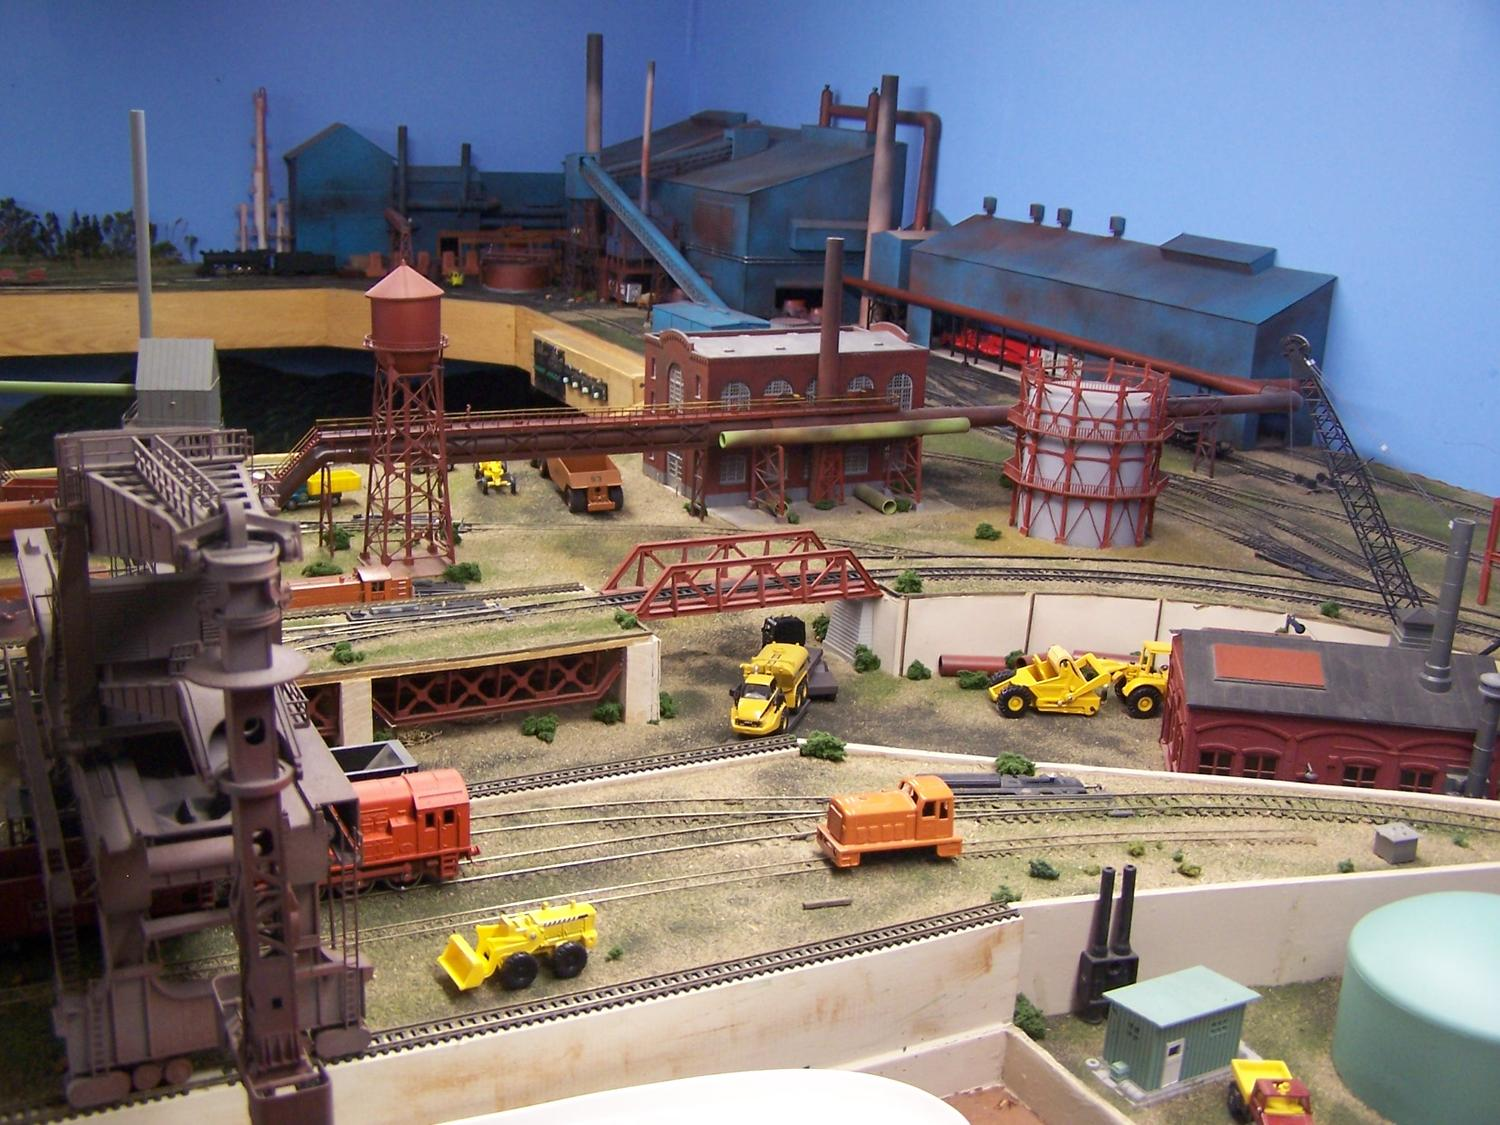 View of Boiler house highline and Hullet Unloader